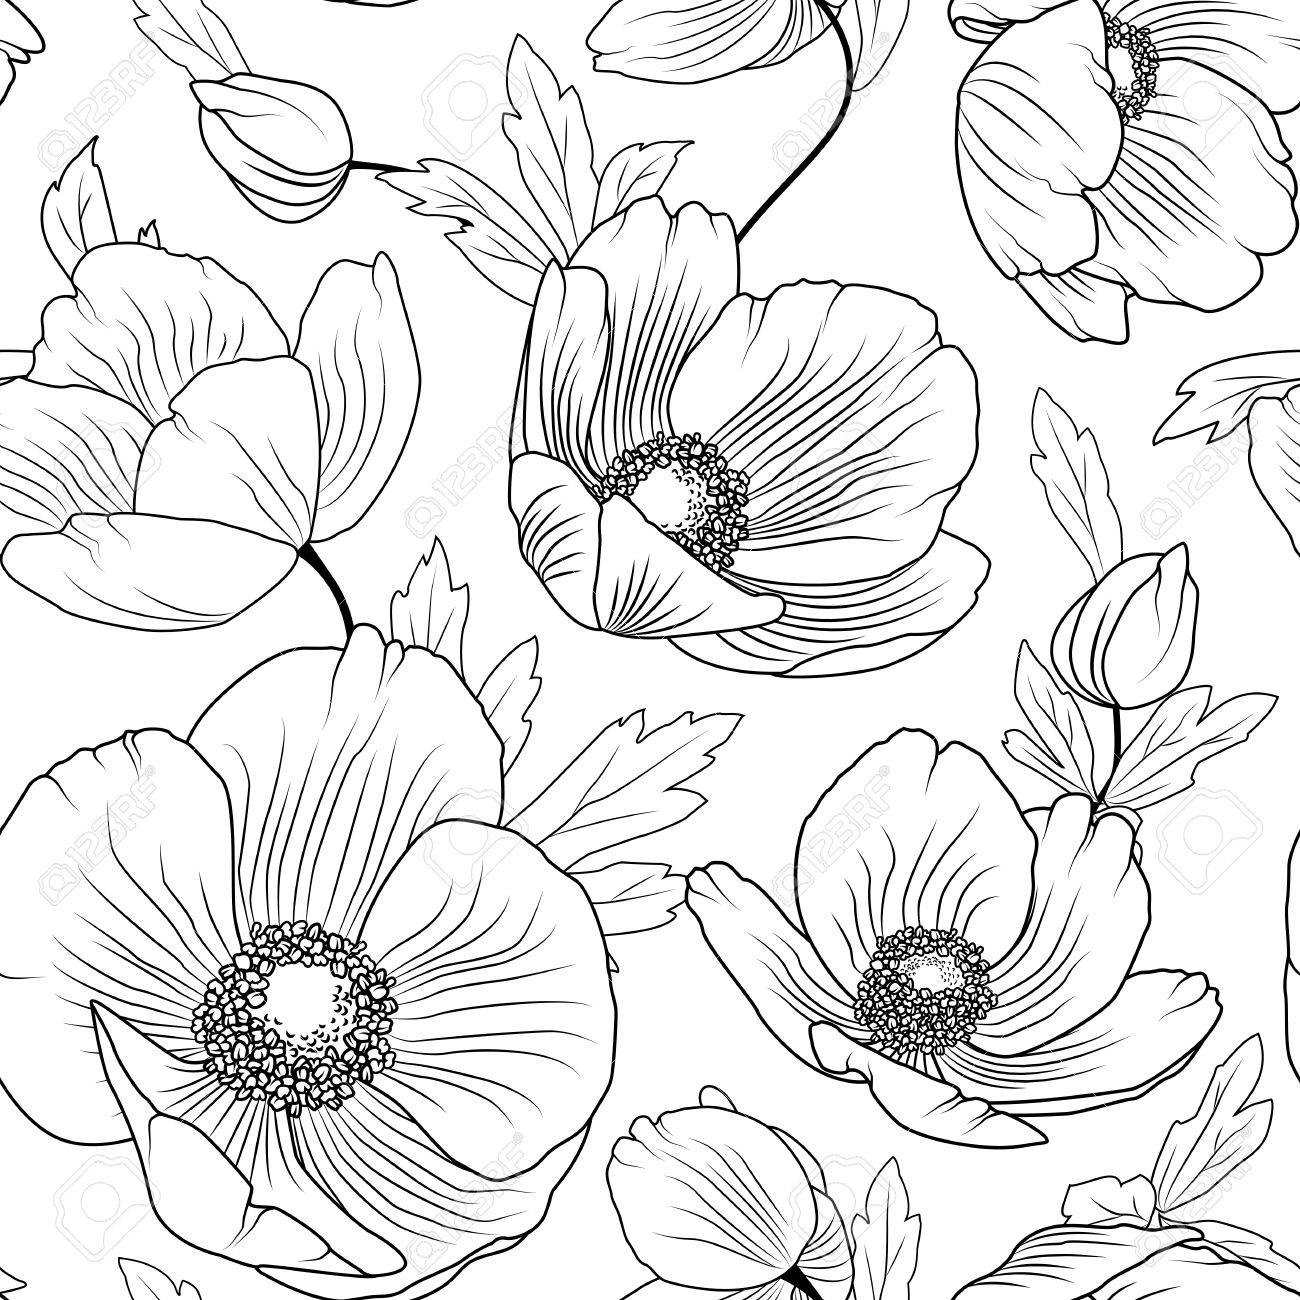 1300x1300 Poppy Flowers Buds Leaves. Seamless Floral Pattern Texture